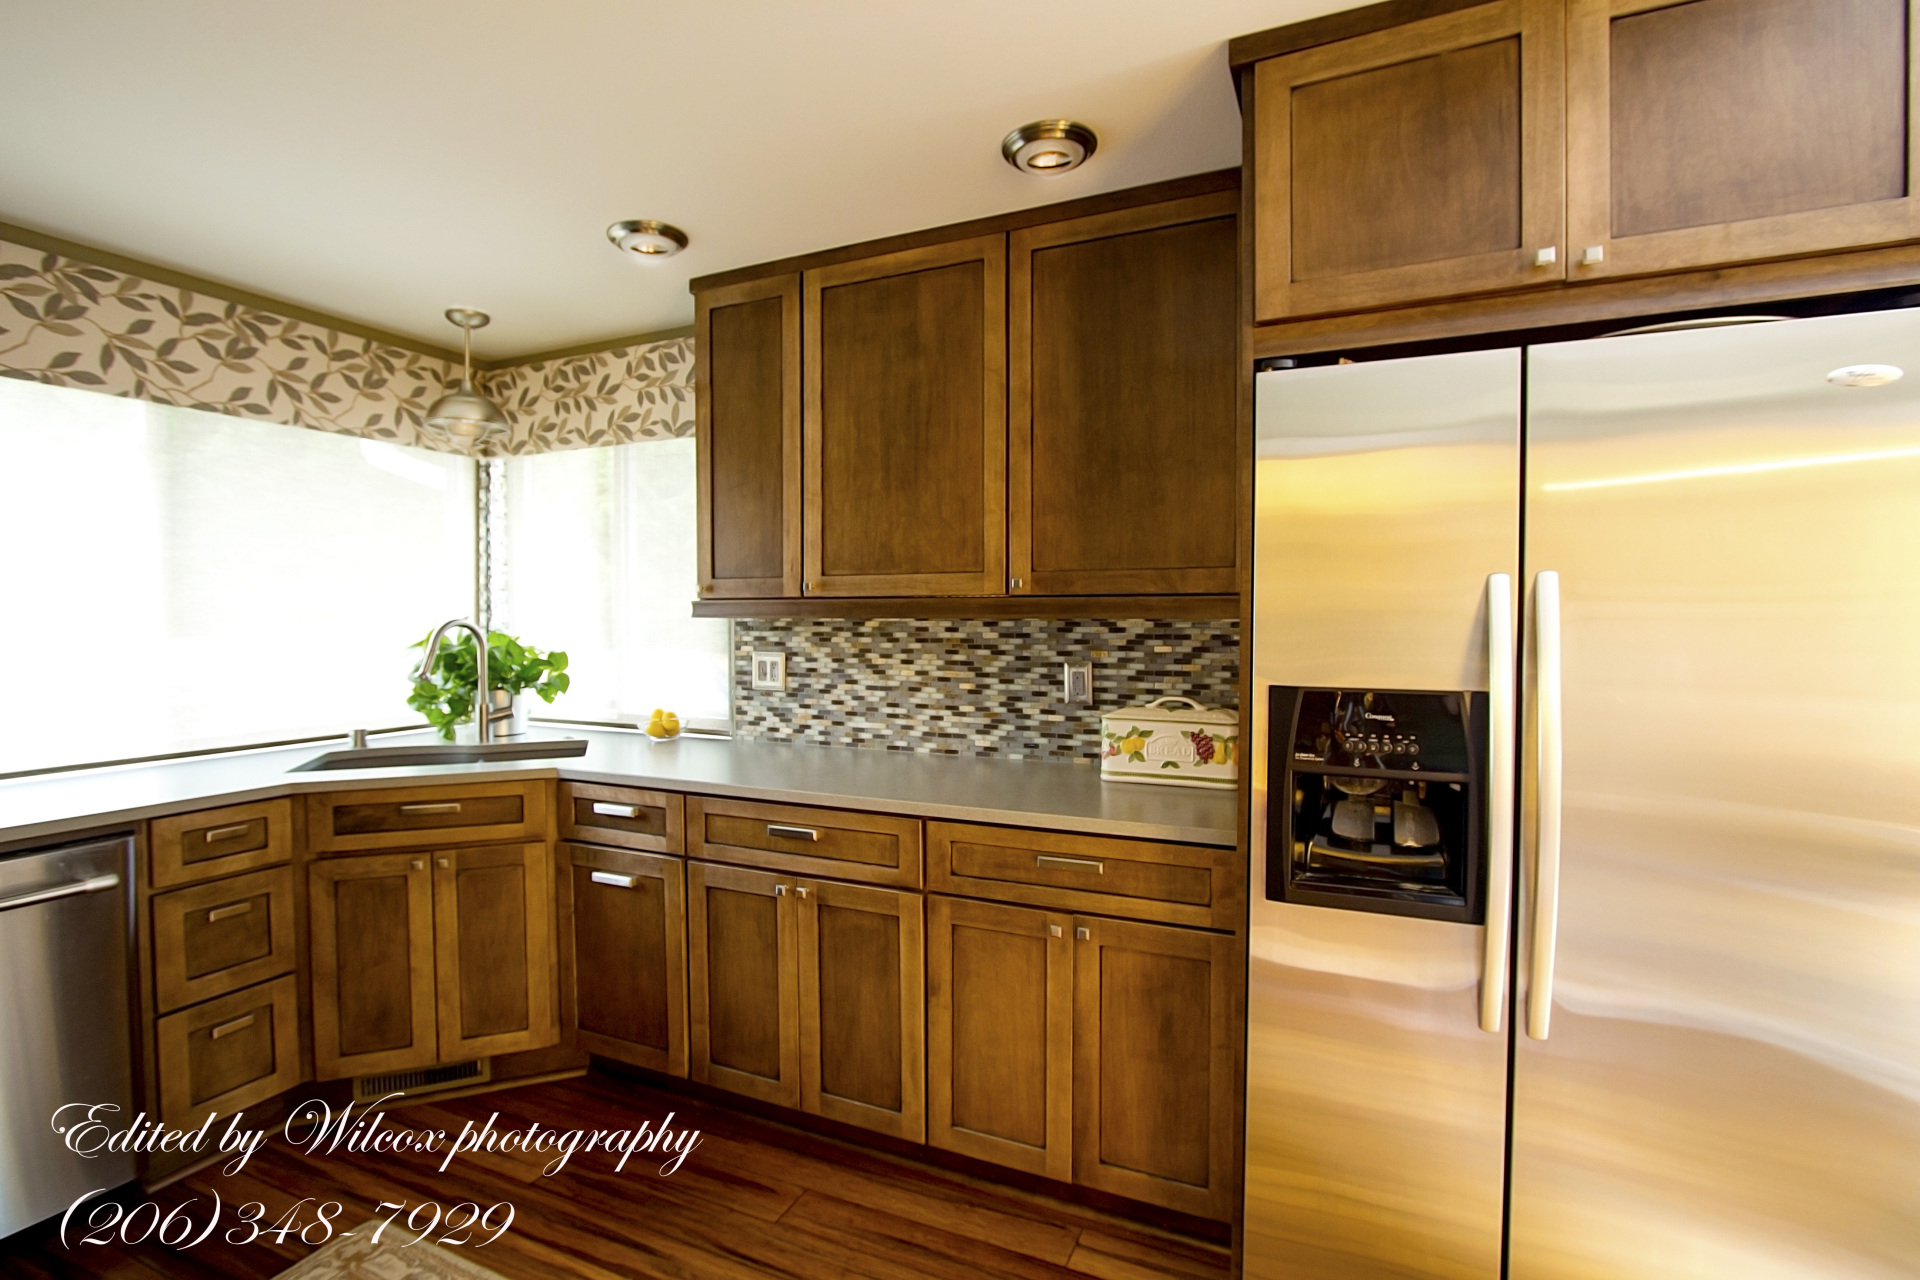 Kitchen Design in the Taylor Residence